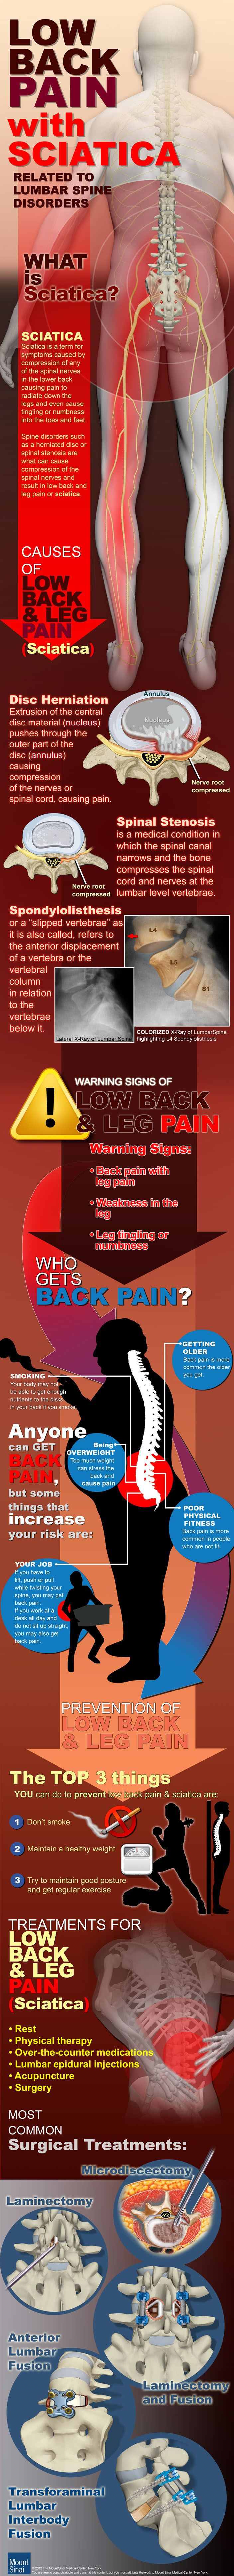 Low Back Pain with Sciatica - here's the TRUTH 60% back surgeries are UNnecessary - 95% of people with multiple back surgeries have not gone back to work 4 yrs later Back surgeries are so bad there is a medical term- FBSS failed back surgery syndrome -17% procedure error - 4-36% iatrogenic injury - 5-6% nosocomial infection - 2% serious drug reaction What is successful - surgeons may quote 98% for fusion surgery. Define success as pain relief and it drops to 74% - for single fusion for pain…